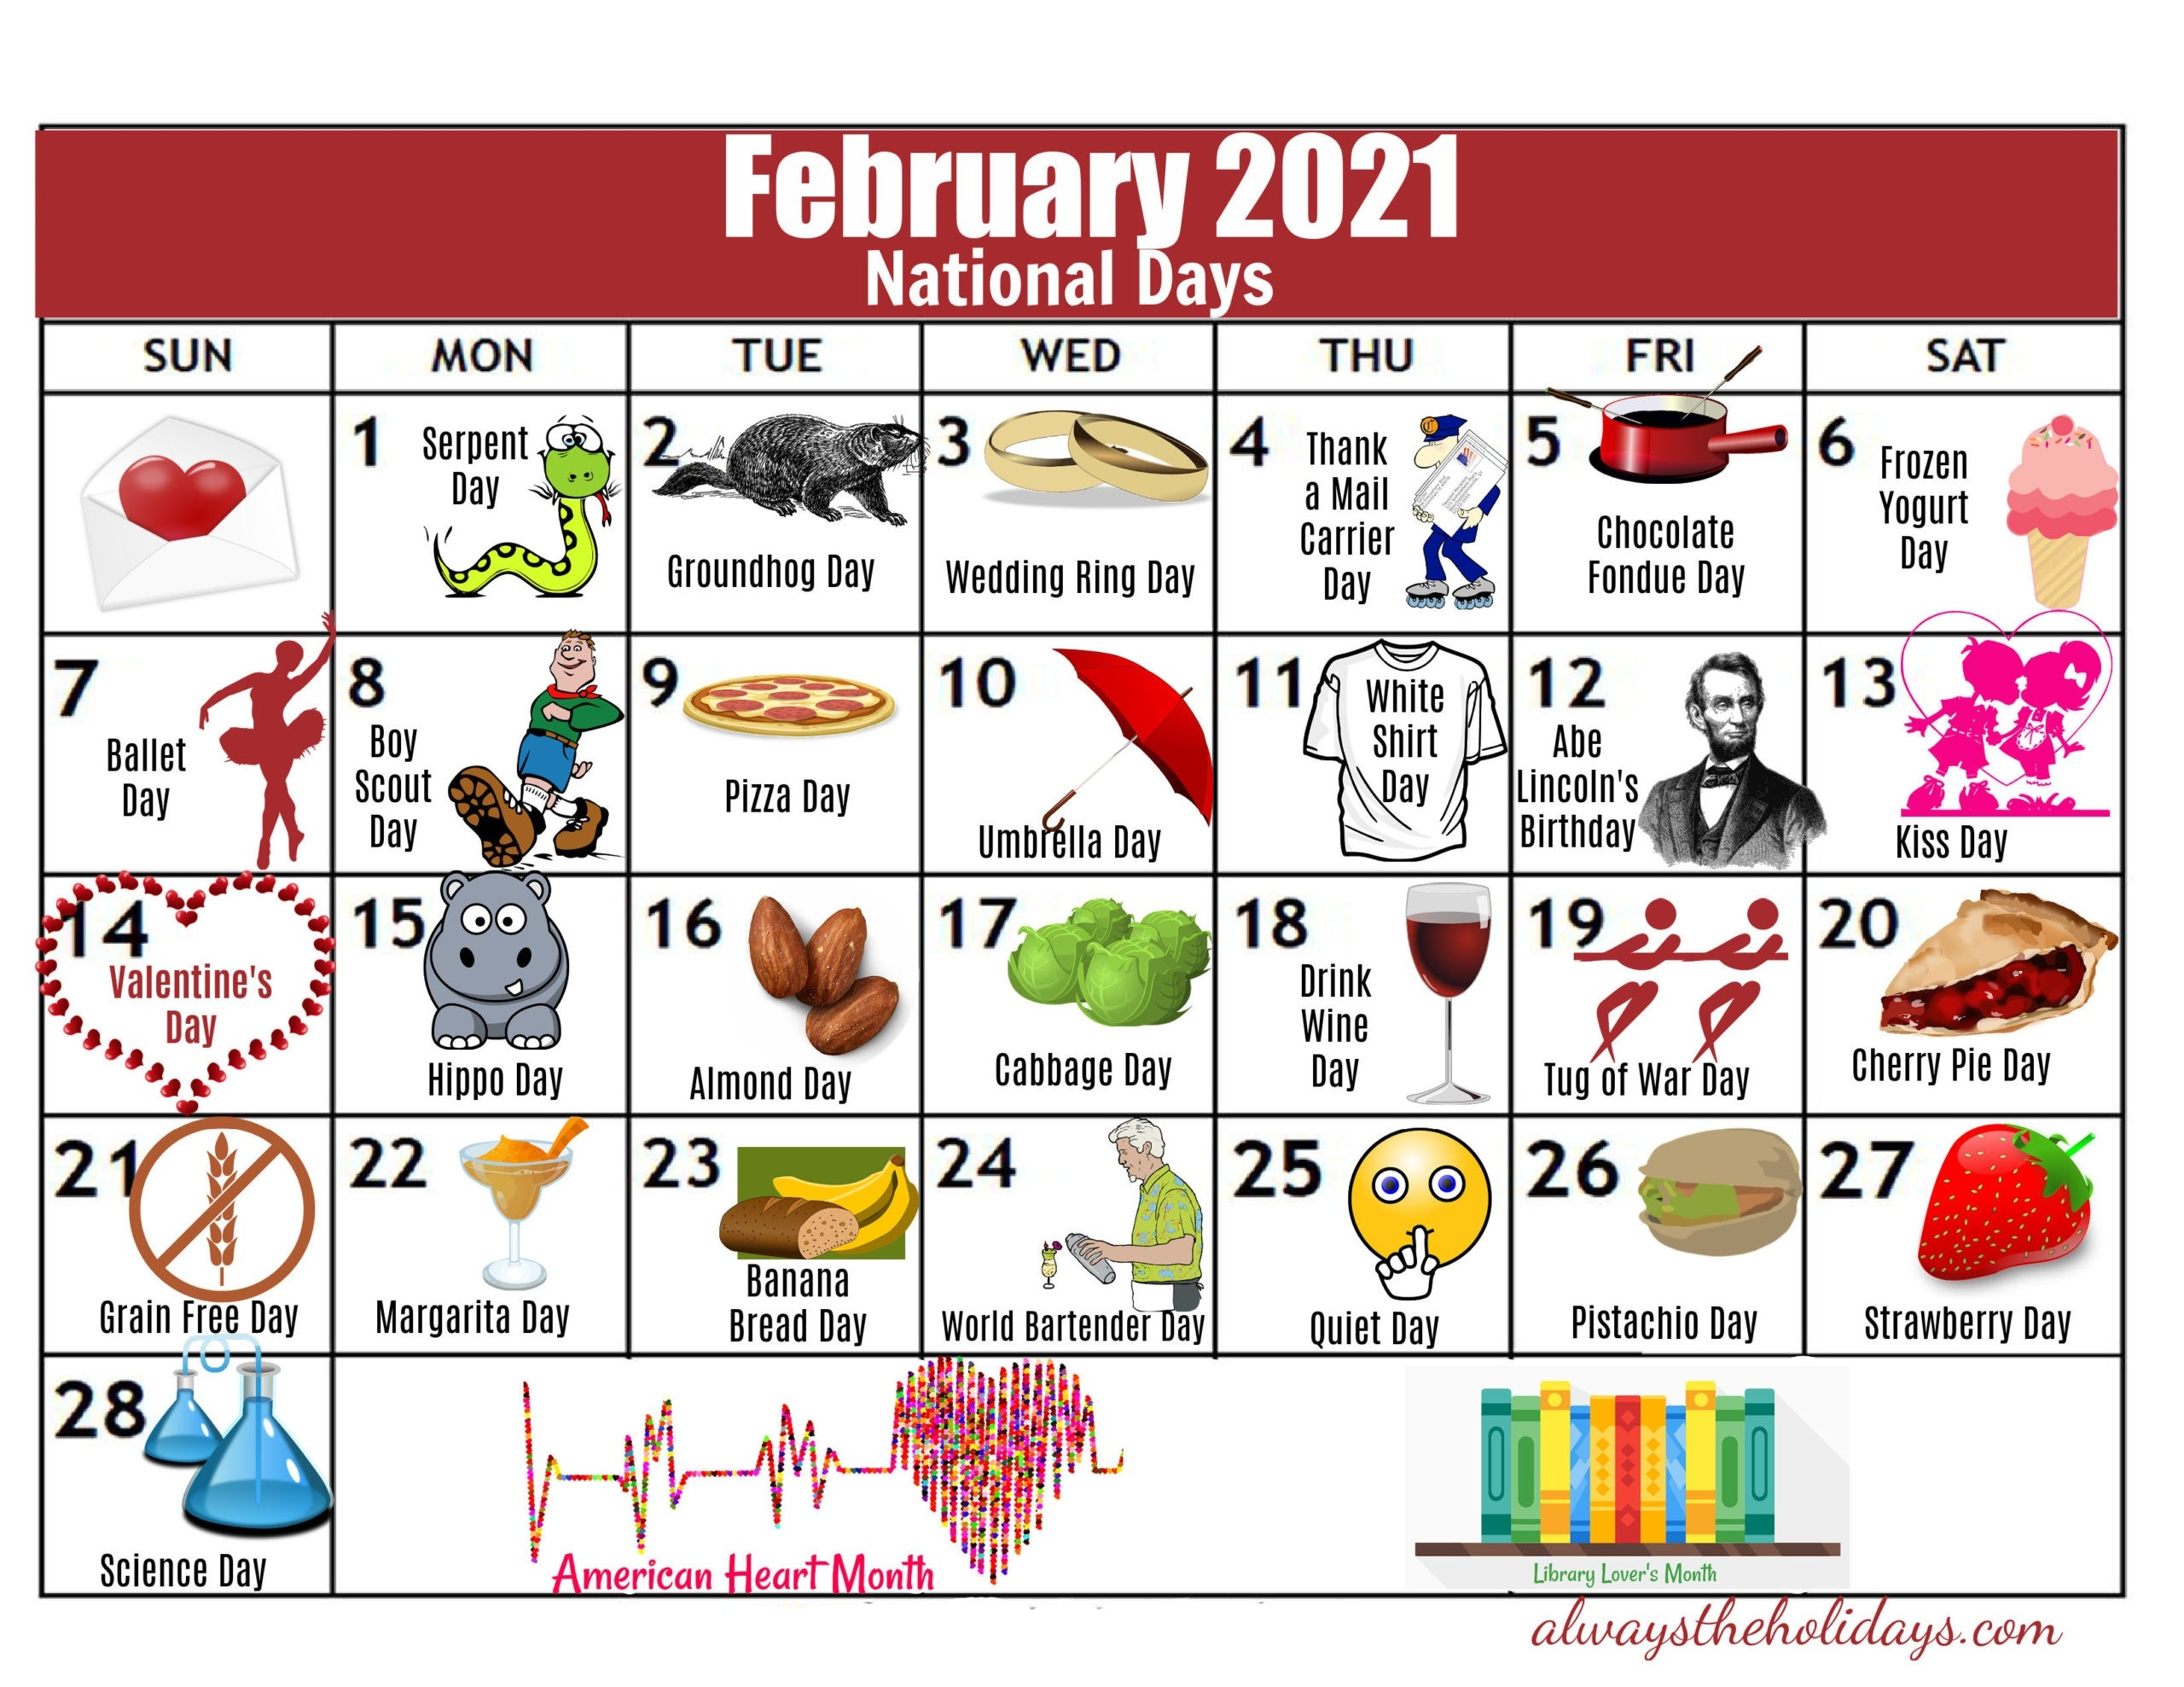 February National Day Calendar - 2021 Free Printable Calendars-National Food Holiday 2021 Calendar